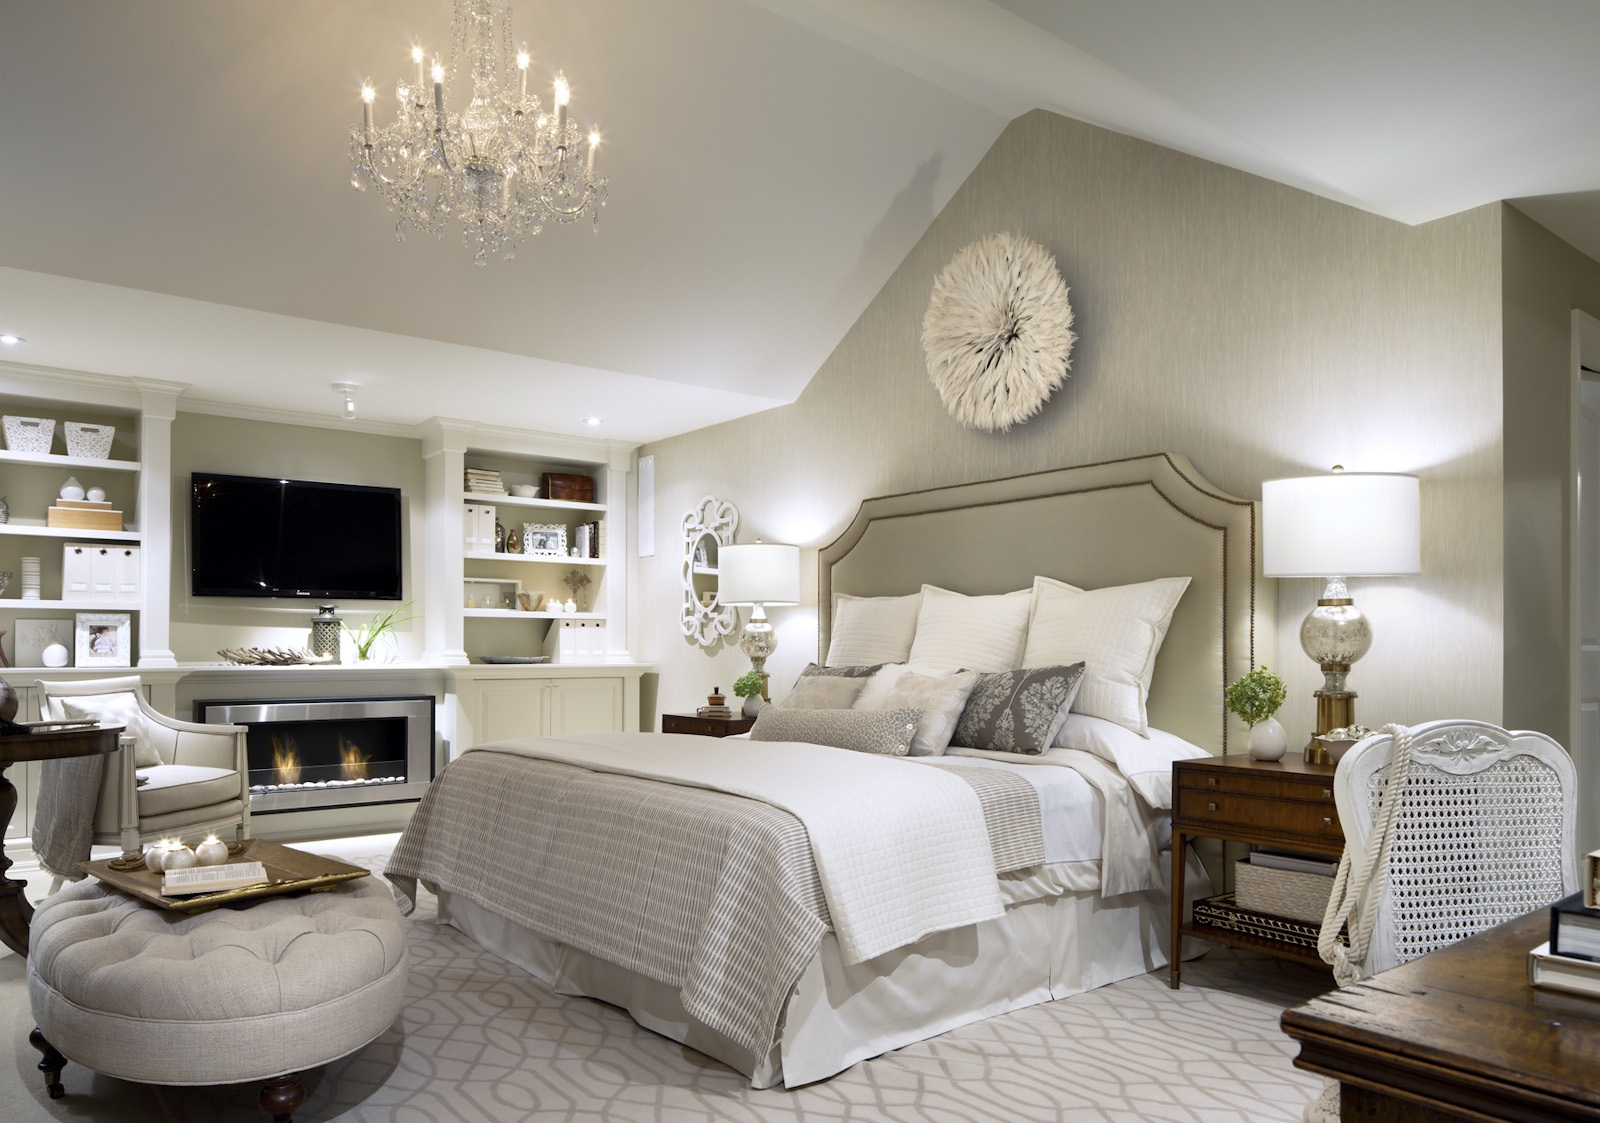 Design by Candice Olson Bedroom 1600 x 1123